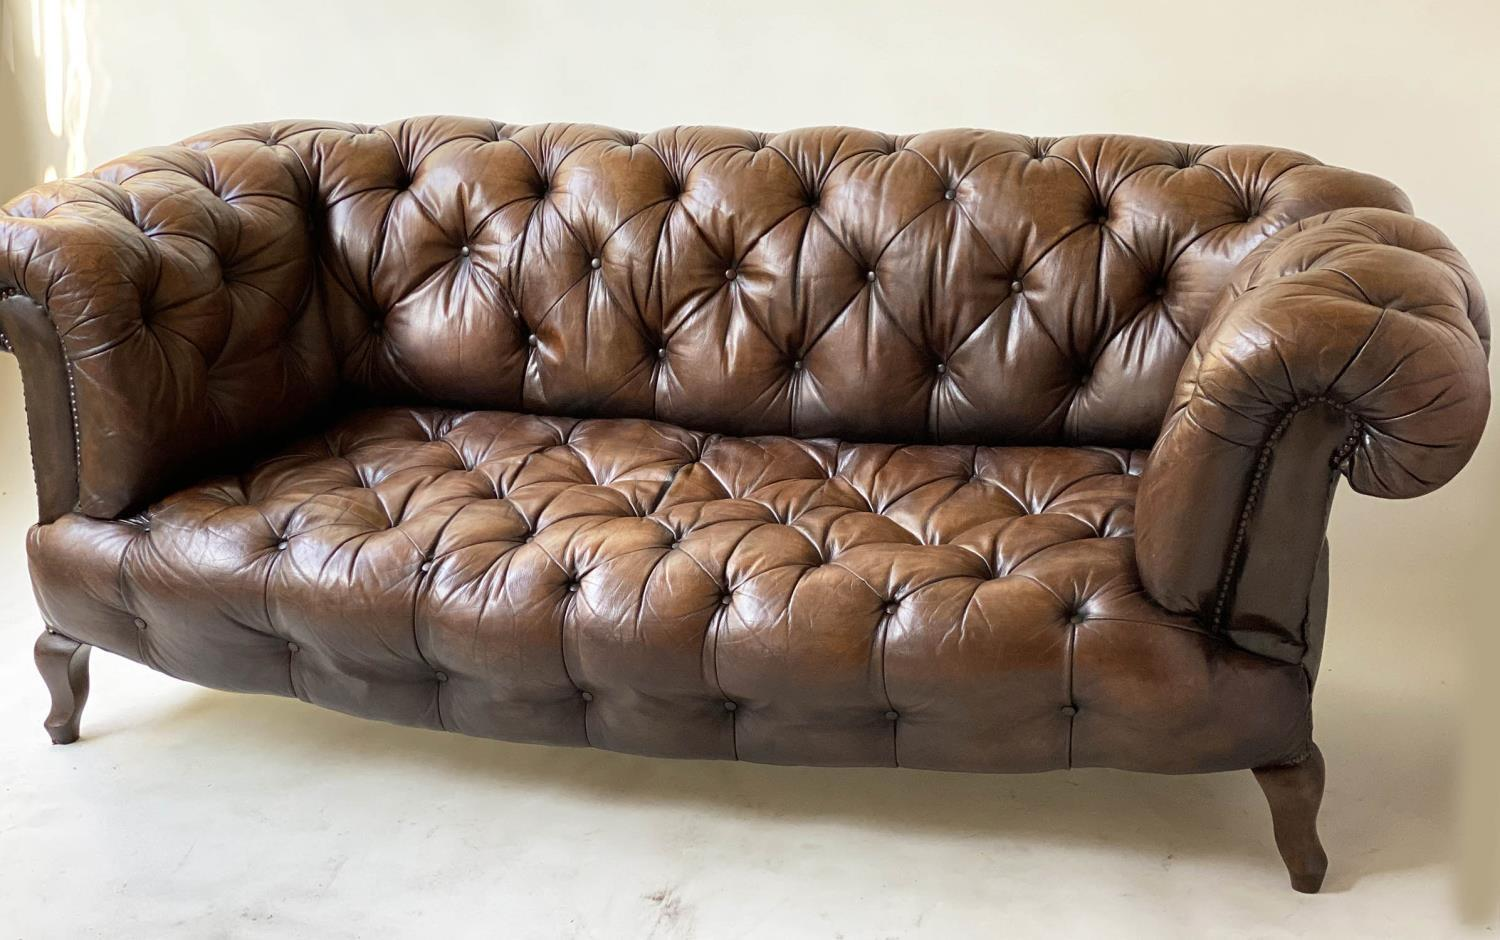 CHESTERFIELD SOFA, early 20th century Edwardian aged and faded brown leather with horsehair buttoned